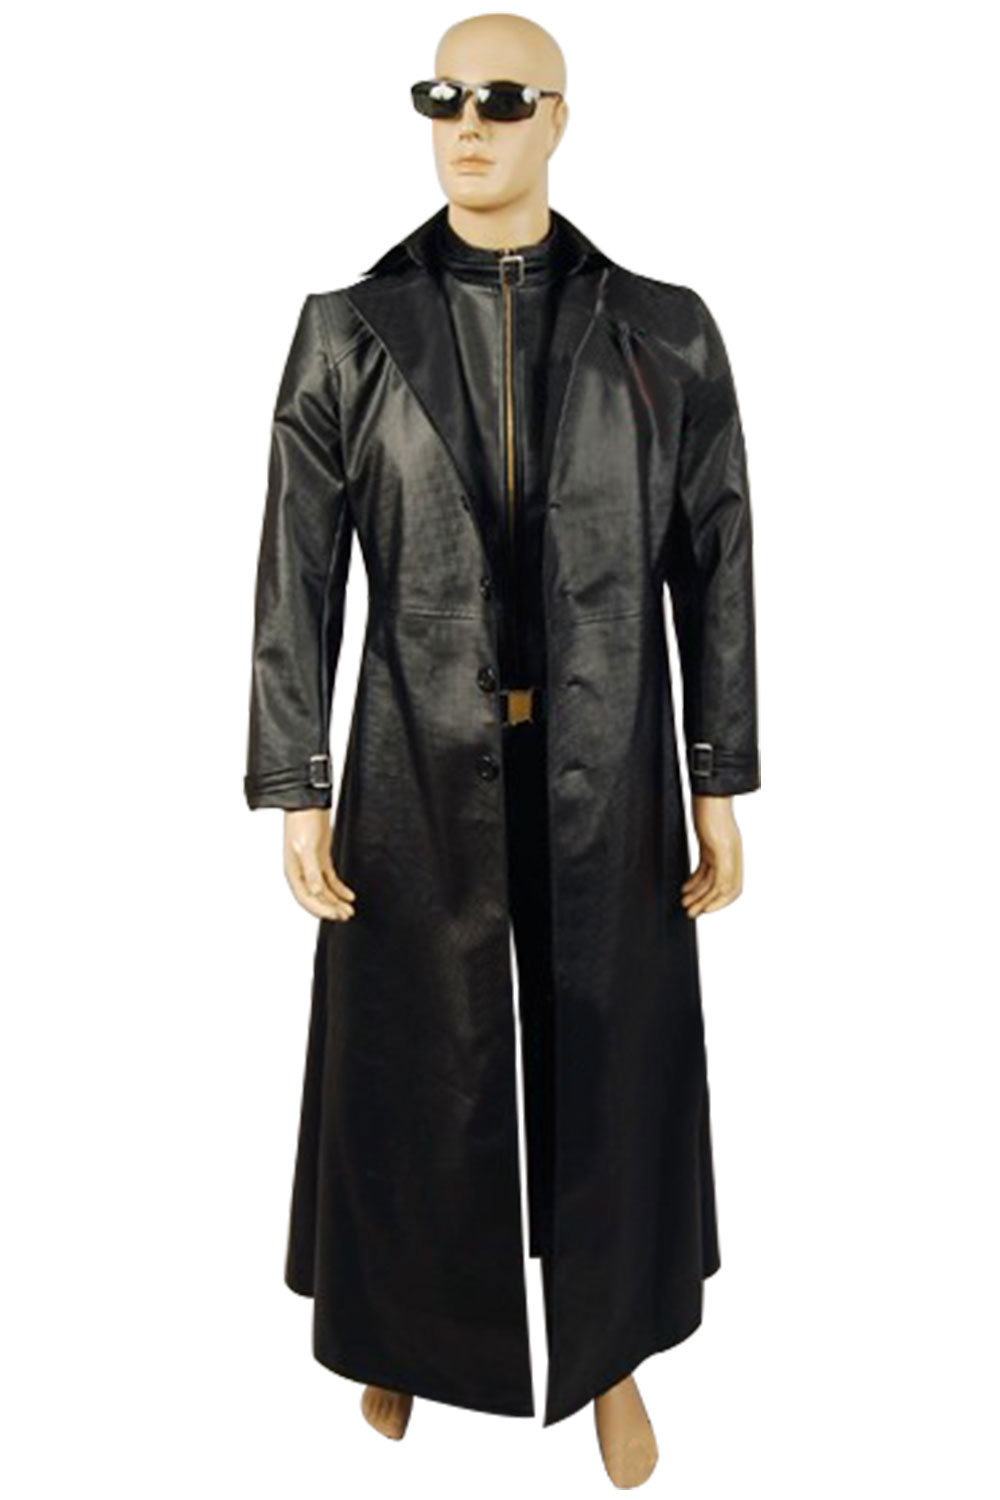 Resident Evil 5 Albert Wesker Coat Jacket Costume Cosplay Halloween Carnival Costumes For Adult Men